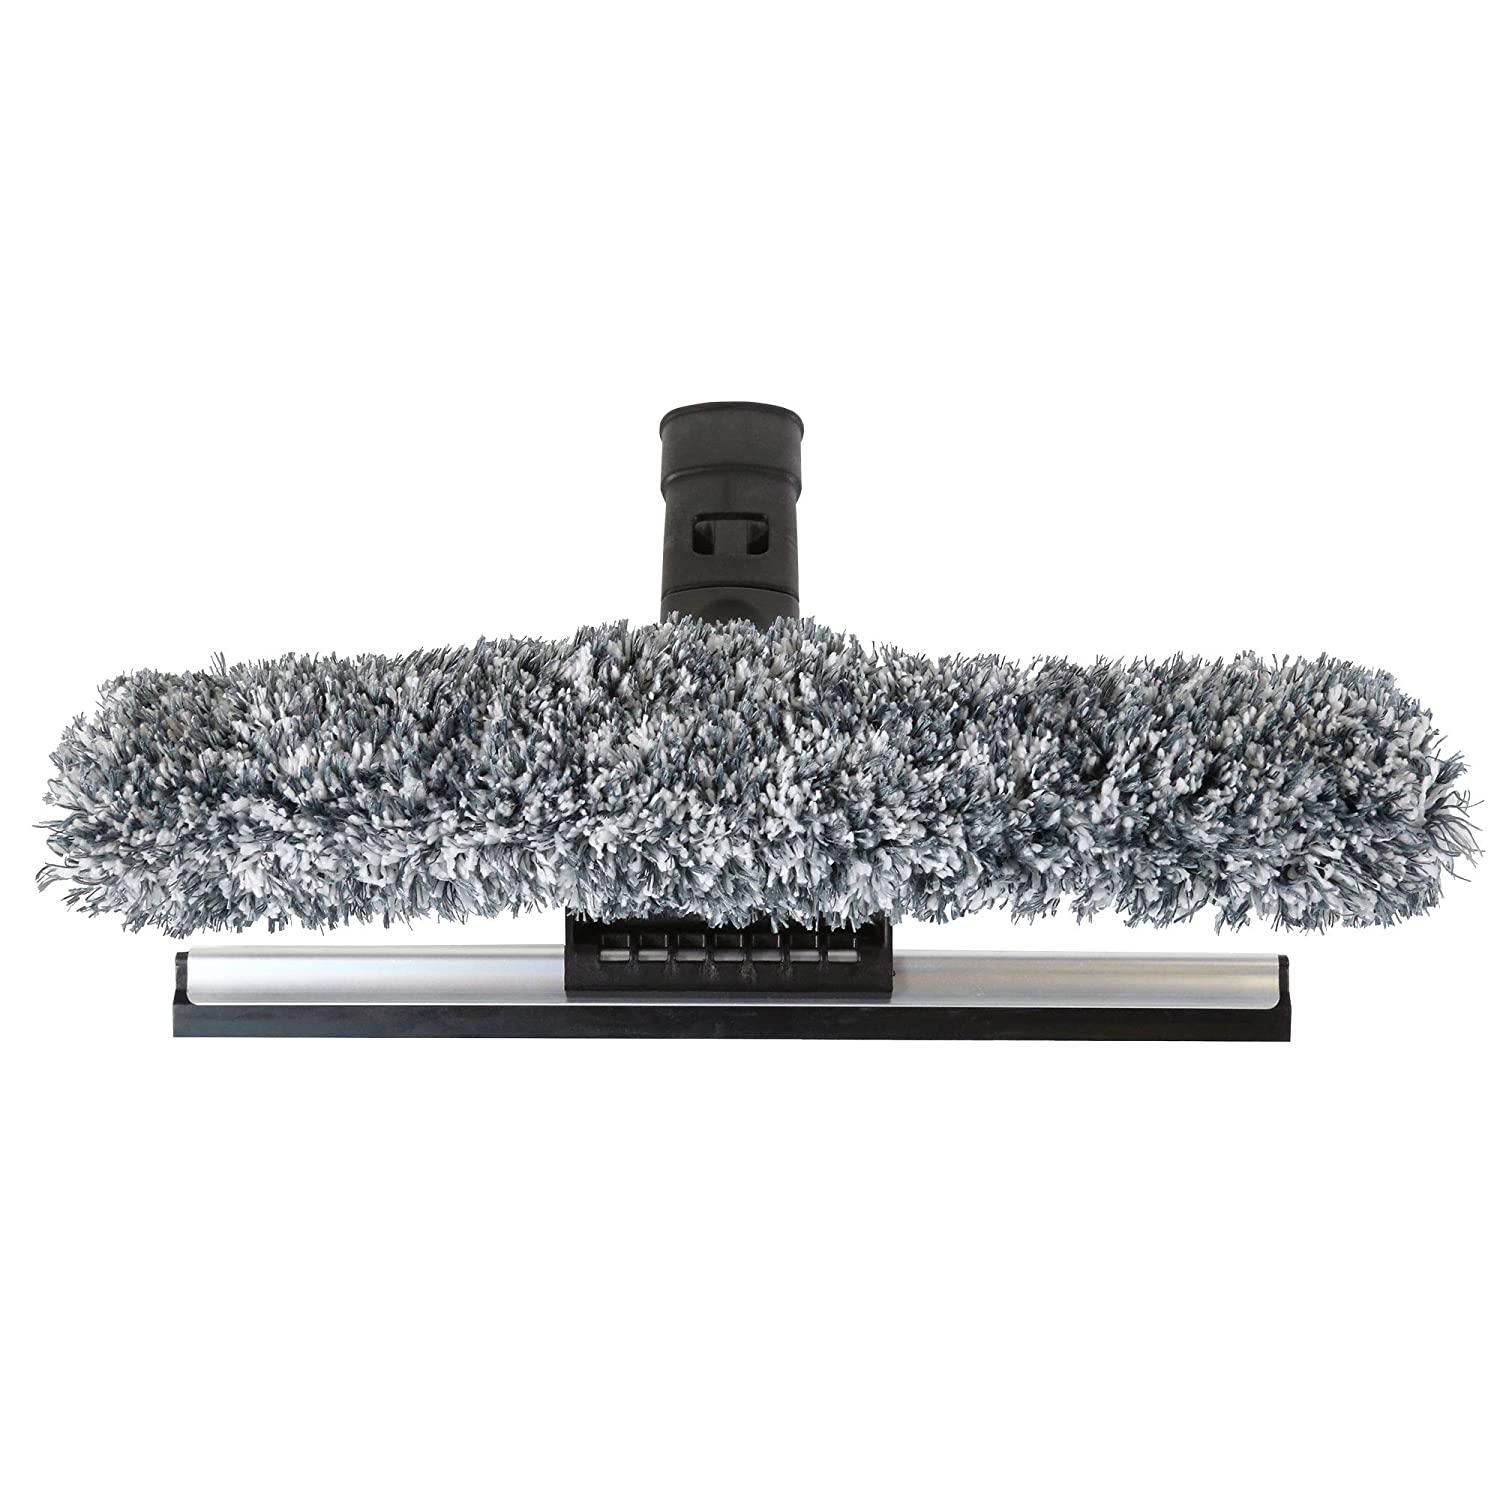 """SWOPT 12"""" Combination Squeegee Head – Squeegee Blade with Detachable Microfiber Scrubbing Pad Ideal for Cleaning Windows and Glass Surfaces – Interchangeable with Other SWOPT Products for More Efficient Cleaning and Storage Head Only Handle Sold Separatel"""